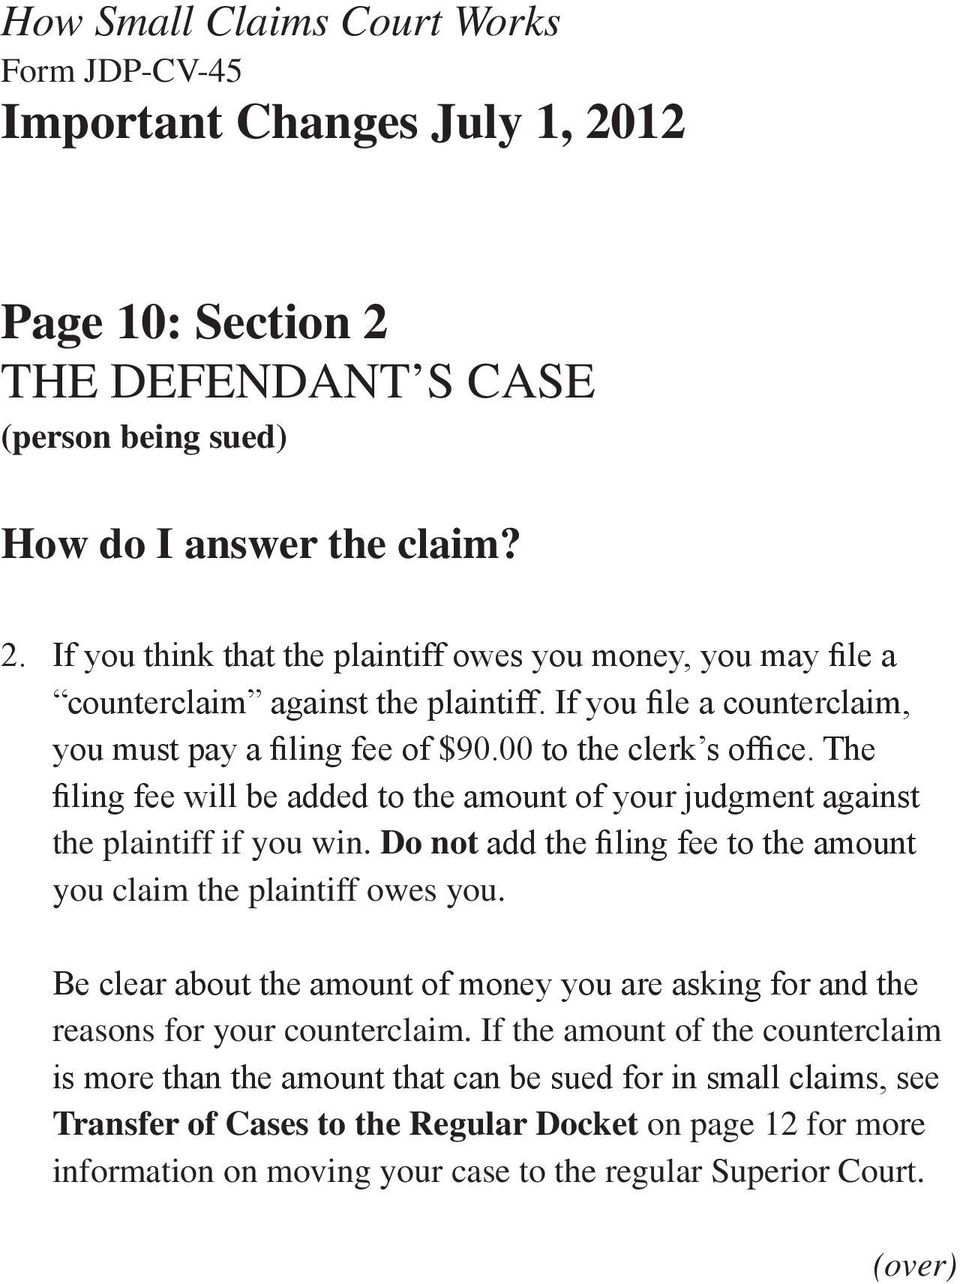 Do not add the filing fee to the amount you claim the plaintiff owes you. Be clear about the amount of money you are asking for and the reasons for your counterclaim.